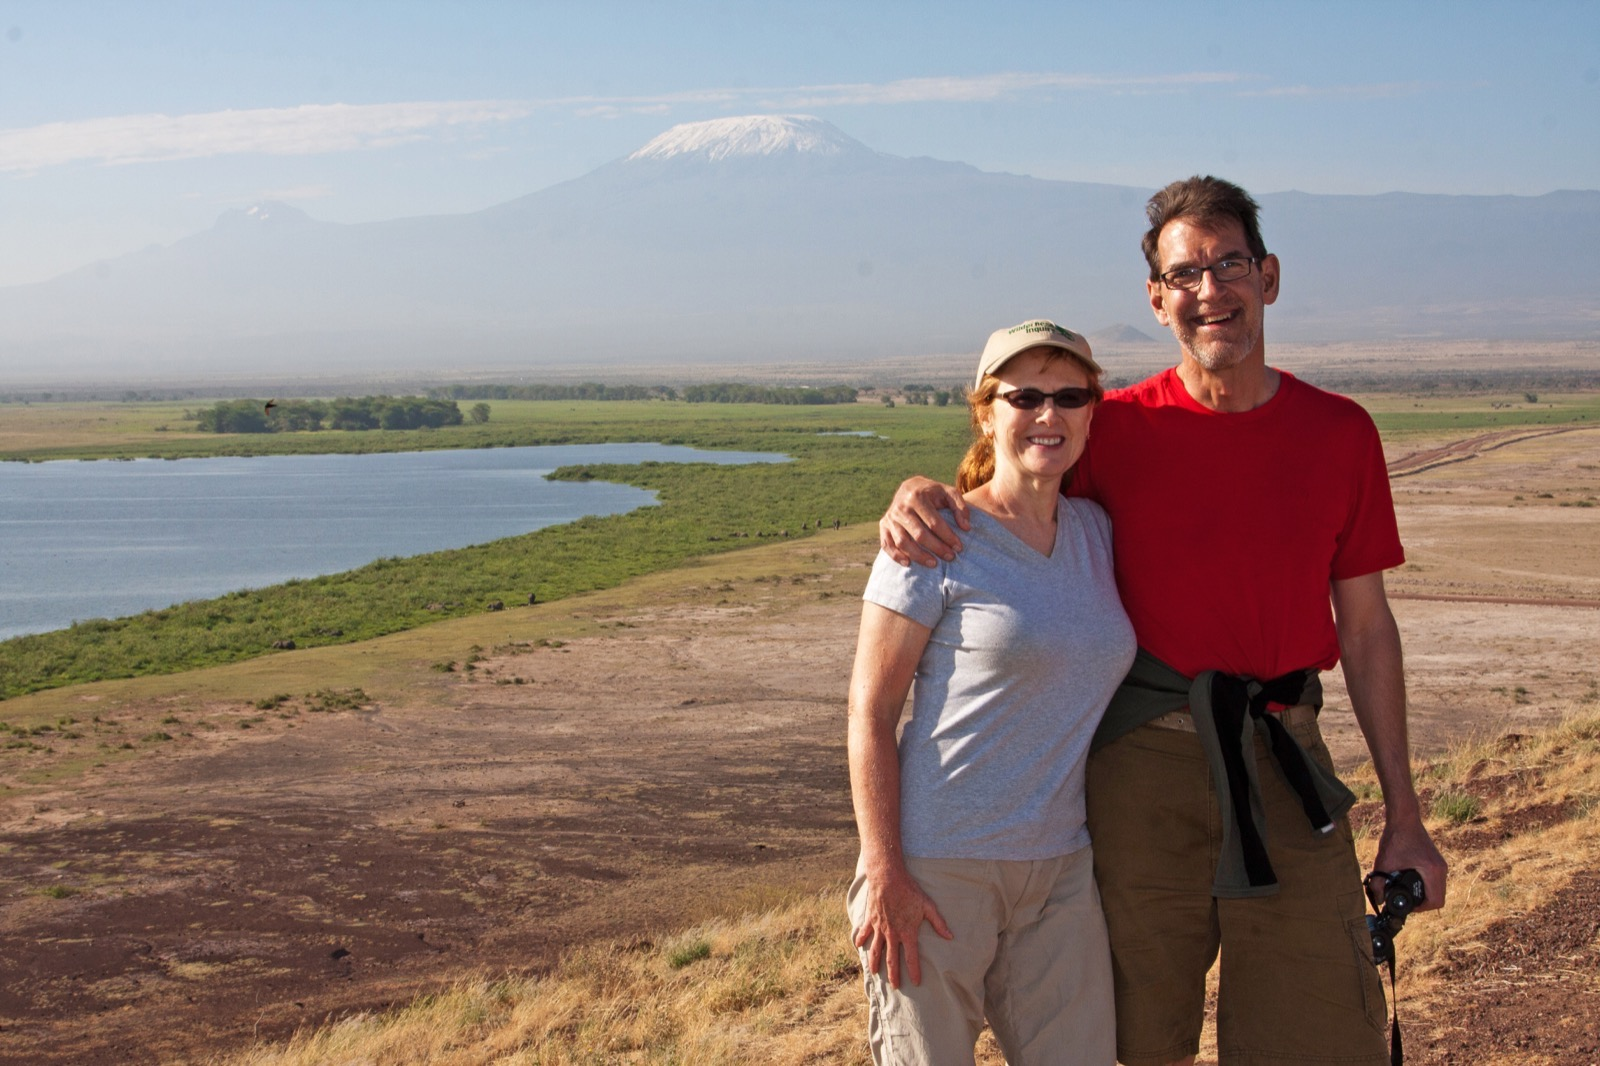 A couple poses with Mt. Kilimanjaro in the distance.